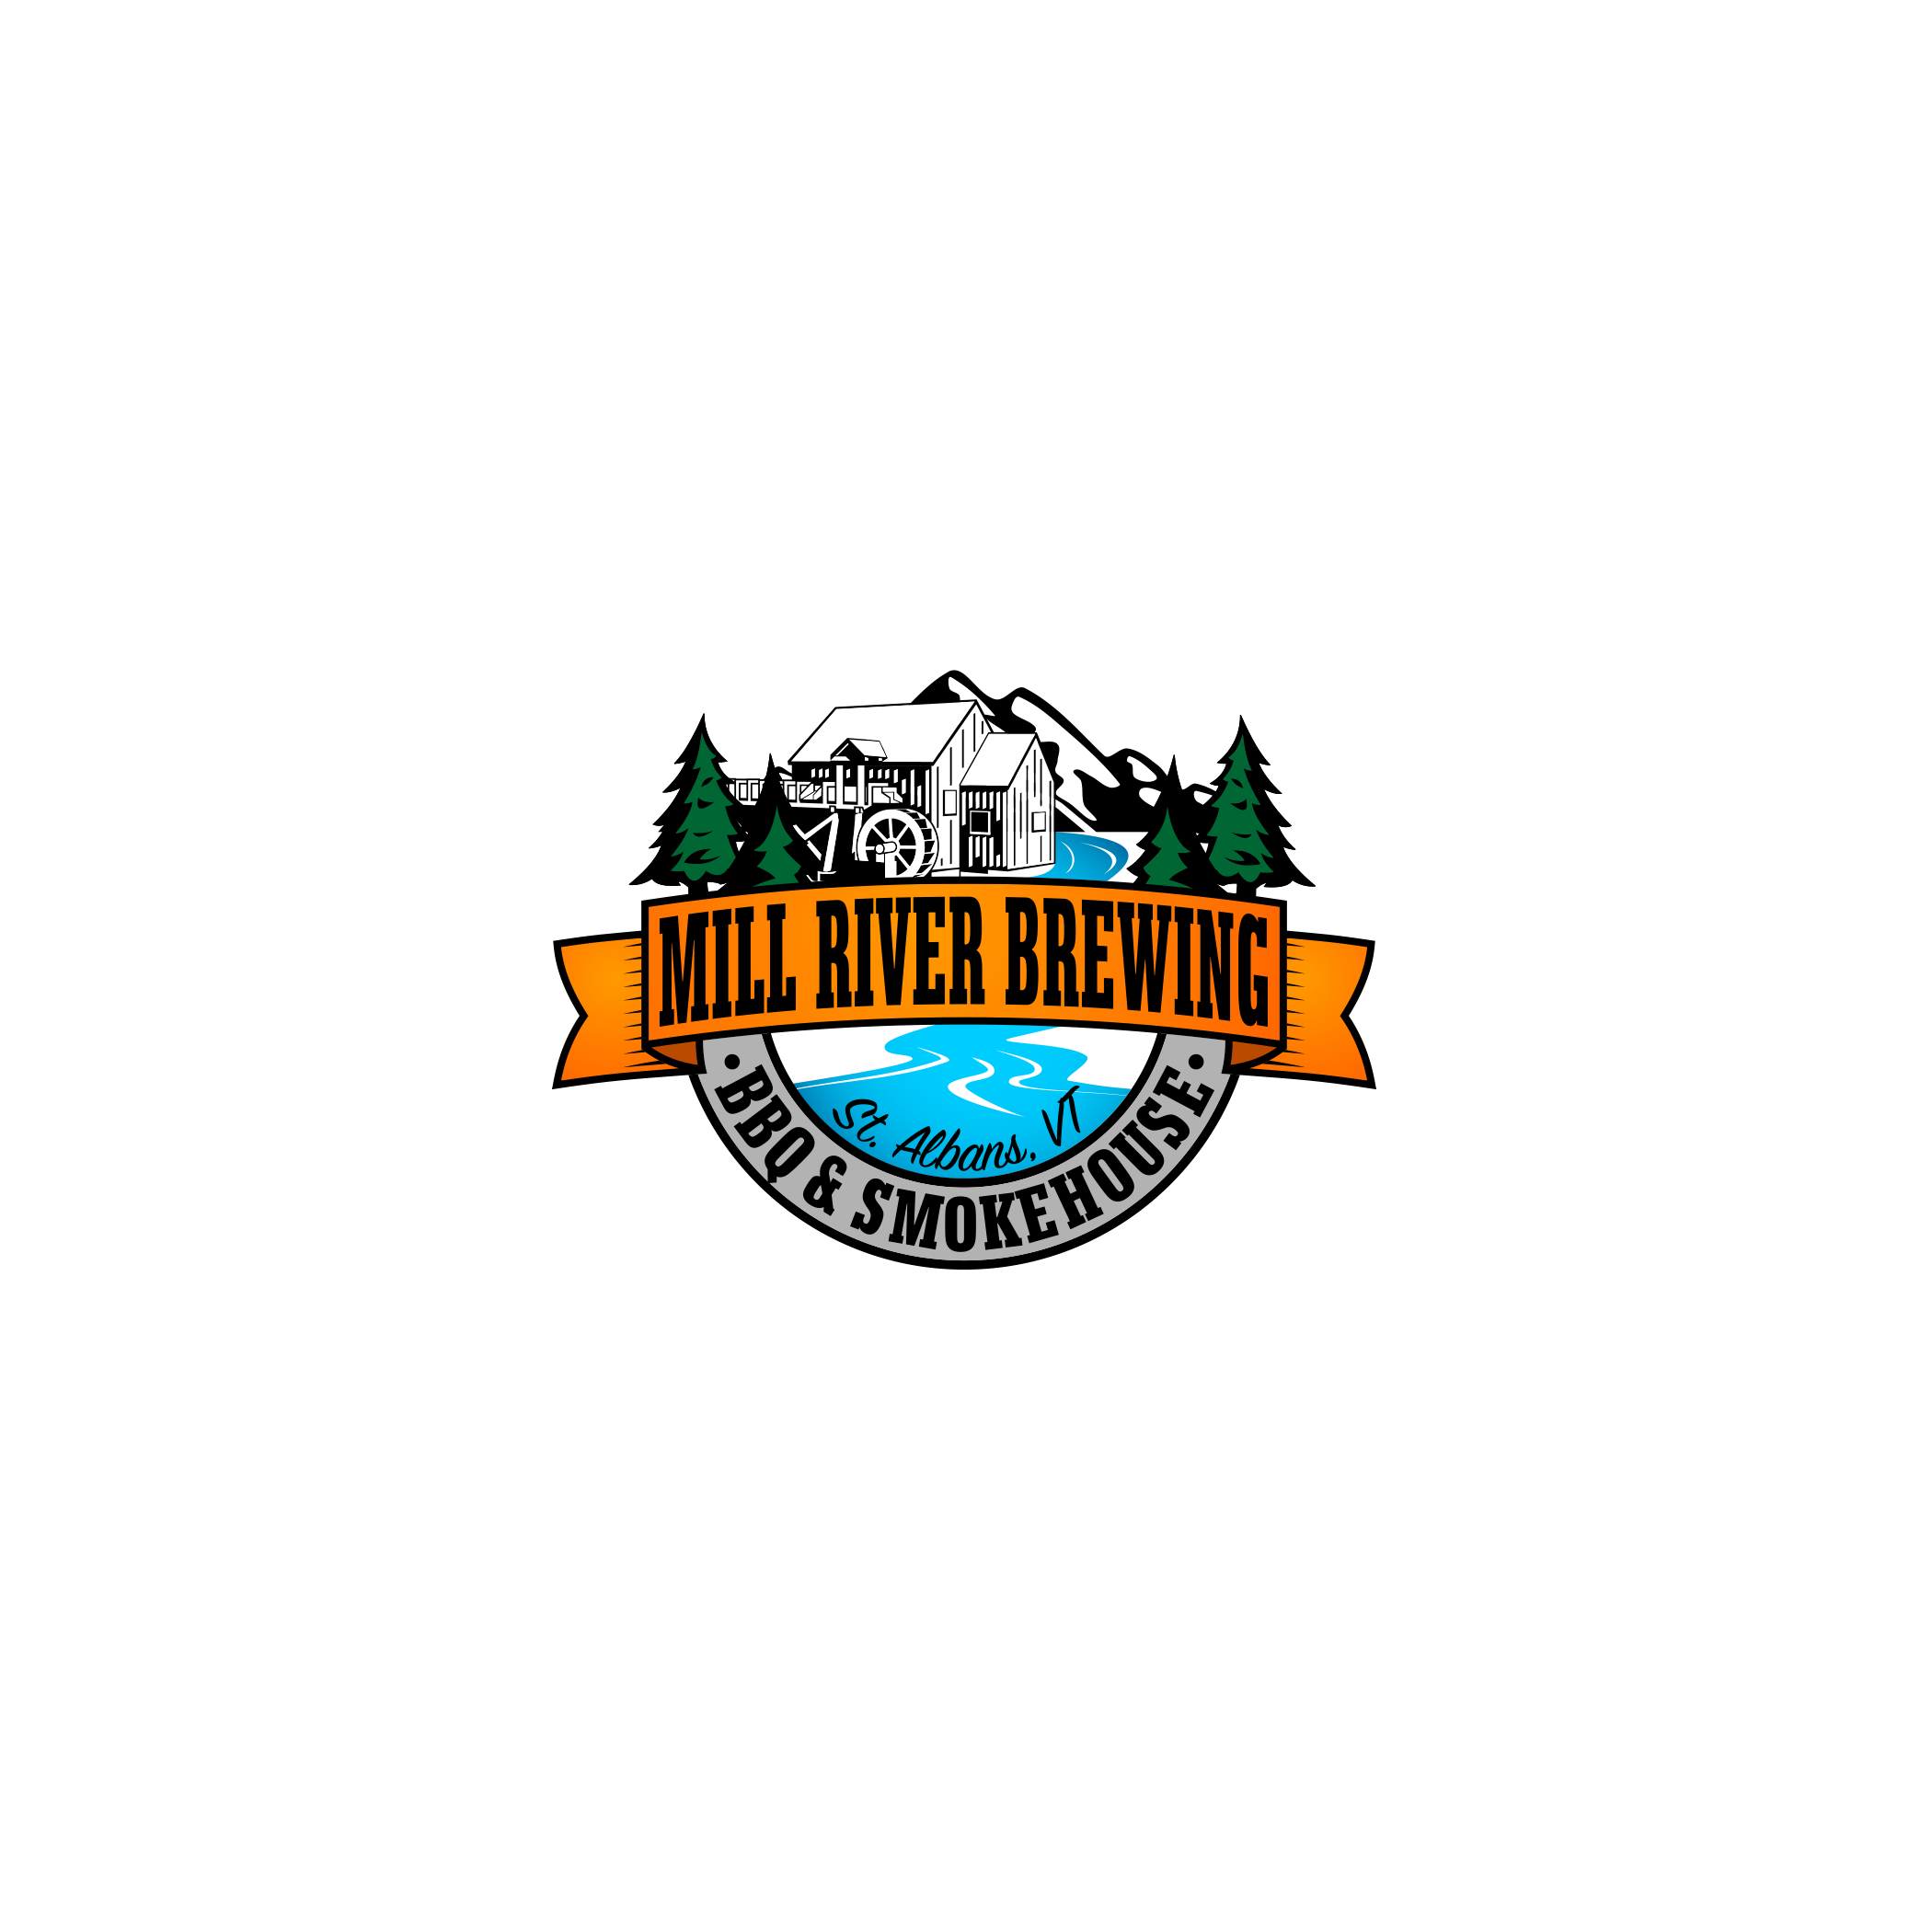 MillRiverBrewingLogo_FINAL_smallclean.png